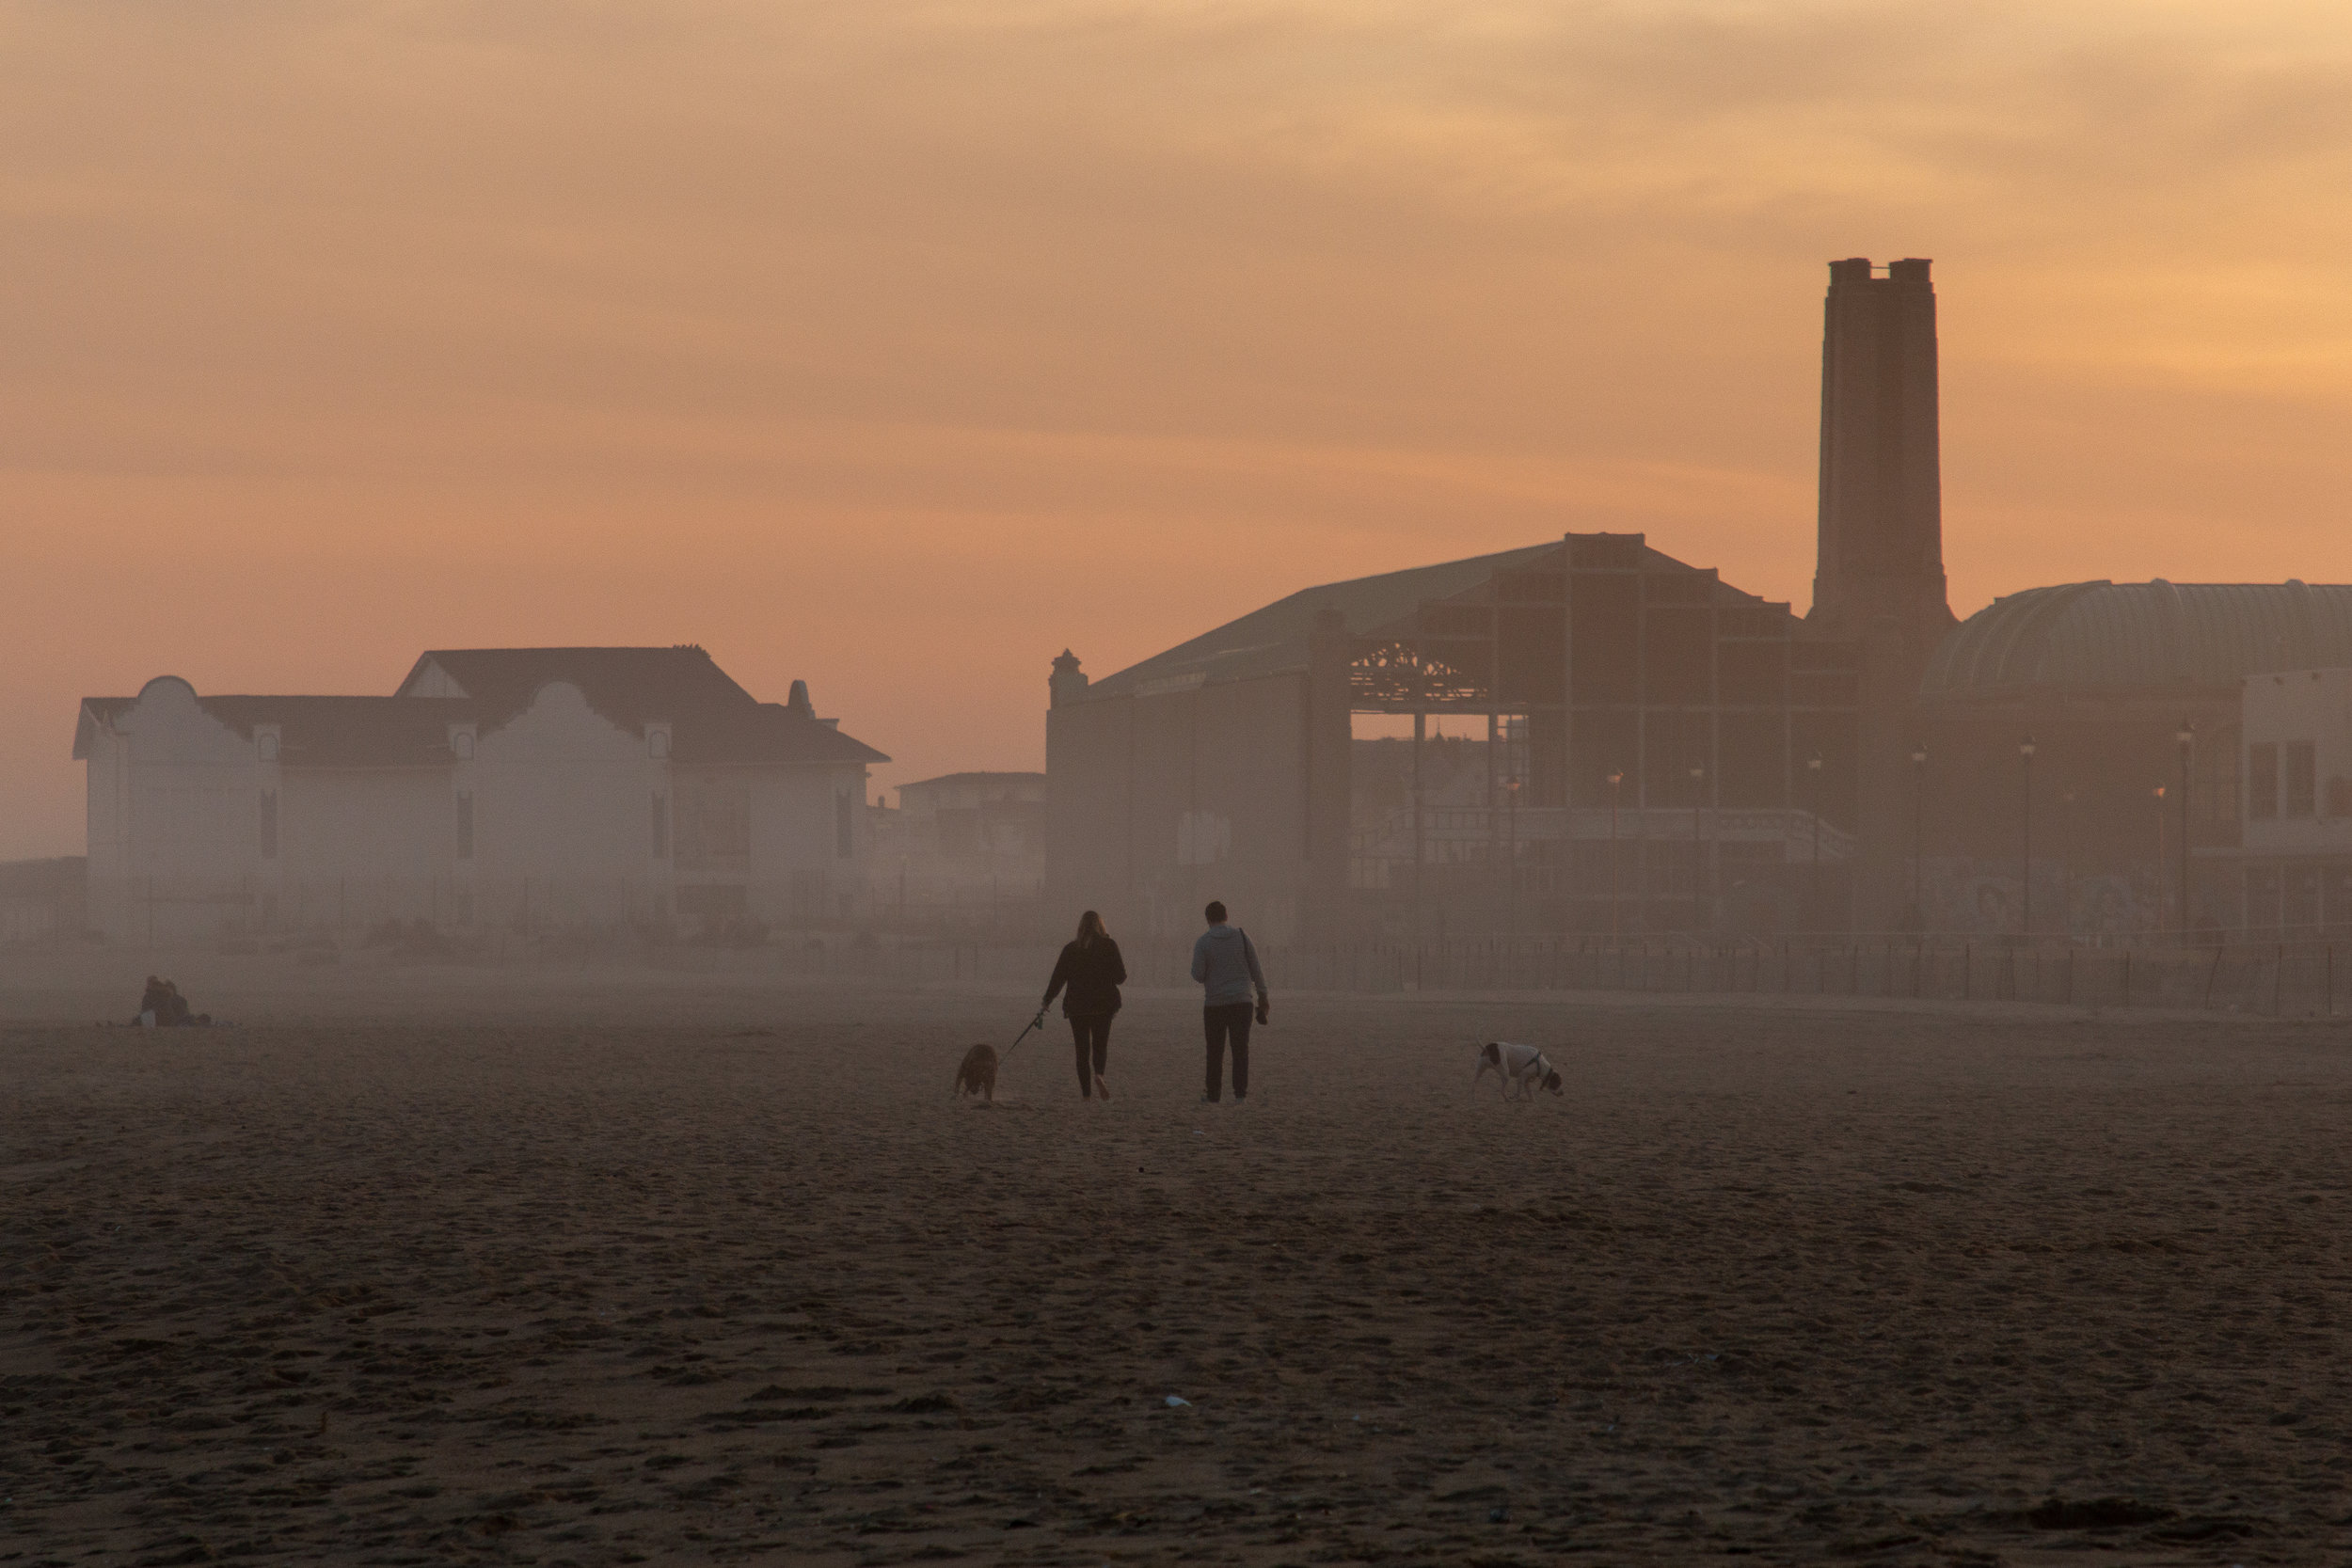 People walking dogs on beach in Asbury Park, New Jersey. Photo by Kayleigh Ann Archbold.